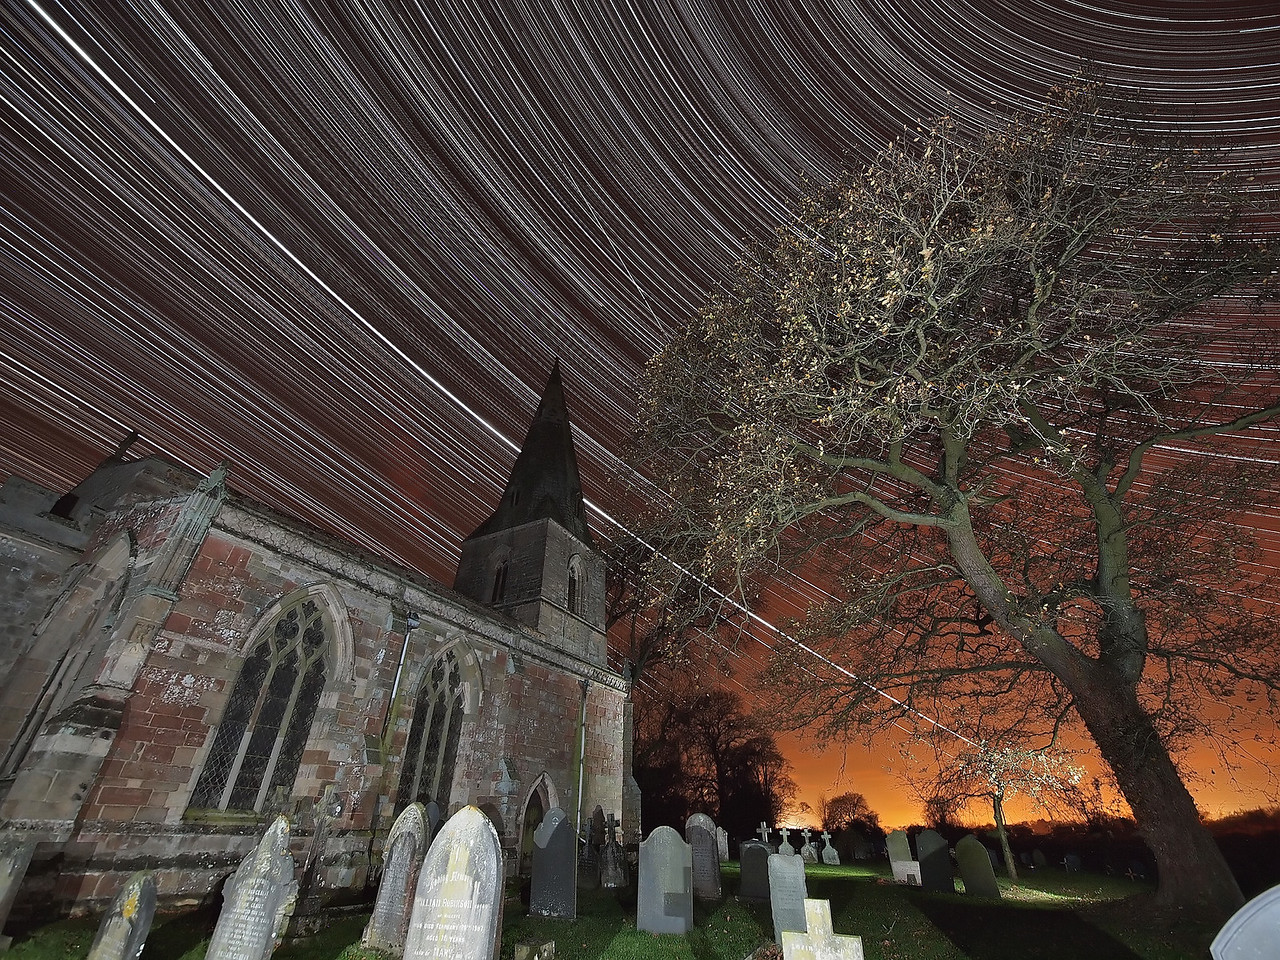 Nov 27/28 2011. As featured in  The Telegraph  and  the Daily Mail   Nov 29th :-) This amazing startrail has captured the ISS, celestial north pole, celestial equator and Jupiter in one shot. 2700 exposures and over 11 hours to execute this shot. A rare clear sky evening during an unsettled and mild start to the British winter. I had this location planned for a while and was just waiting for the right conditions - No cloud, no moon and clear skies. Misterton church with its scary graveyard and this tree make a great foreground composition subject. This is paramount for good startrail shots IMHO. I set up the Olympus E5 with 7-14mm wide angle lens on tripod at F4, ISO 640 and 15s exposure time. Attaching the RM-CB1 cable I locked the cable to take continuous shots all night. Camera was in place approx 1845hrs and I picked it up the following morning at approx 0630hrs. Back at home I imported the 2700 images into StarStax software to provide the final stacked composite. If you look closely between the church spire and tree you will see the International Space Station (ISS) intersecting the startrail arcs. This was the 0555hrs flyby, The stars are spinning around the celestial north star (polaris) top right and just above the church (bottom left) the stars start to reverse direction. This is the celestial equator. Also, the brightest trail line (running through the church spire) is jupiter. Quite an amazing and pleasing shot, if I say so myself :-)